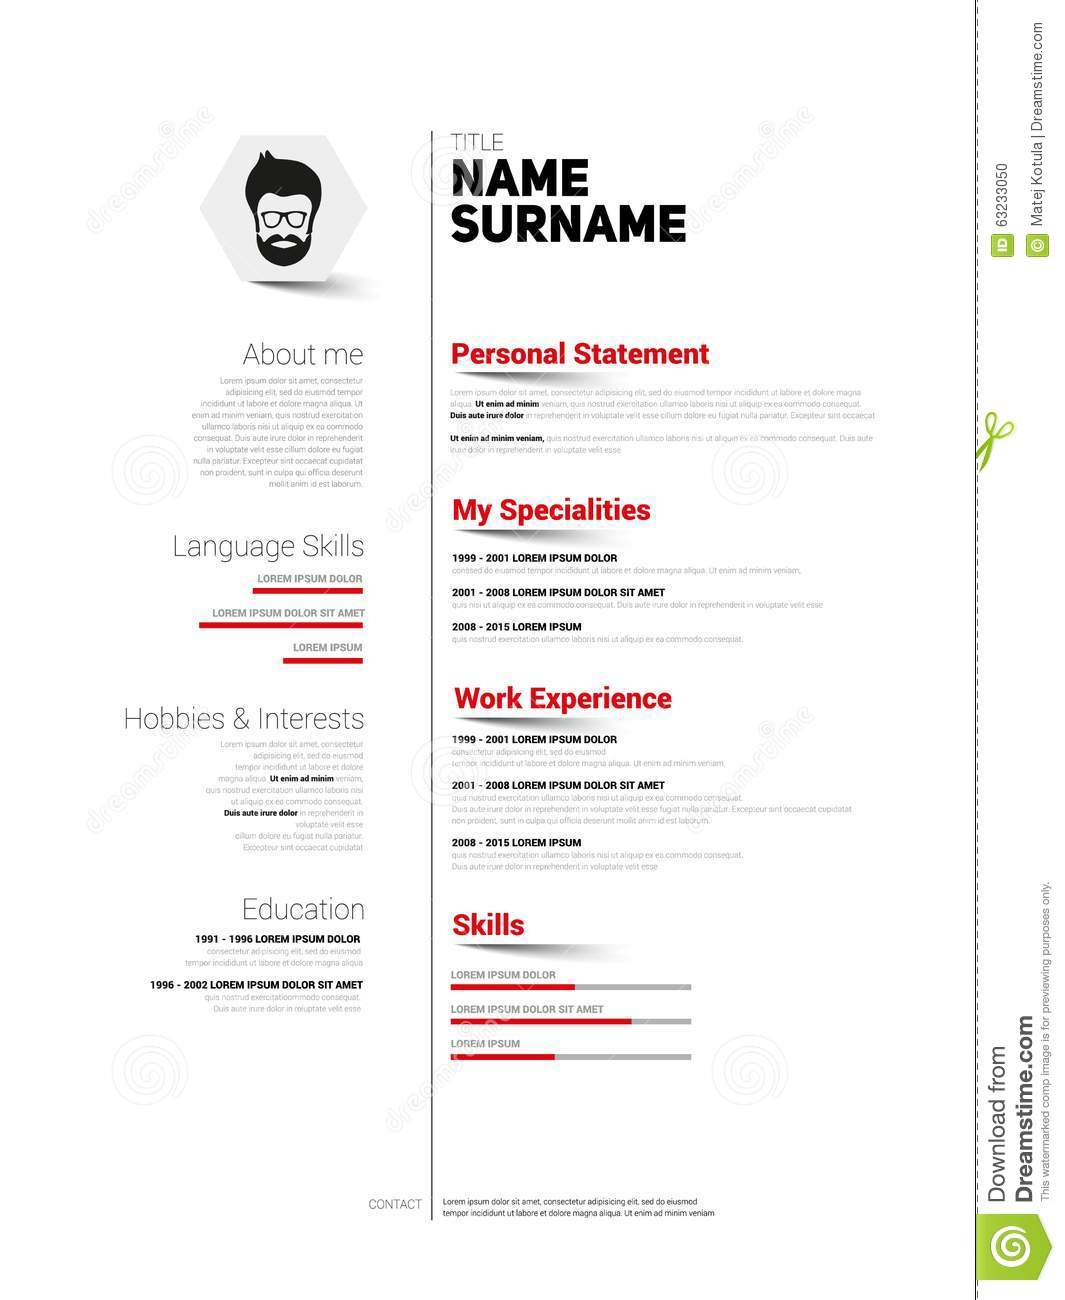 Cv simple bw stock illustration image 63233050 - Simple resume design ...